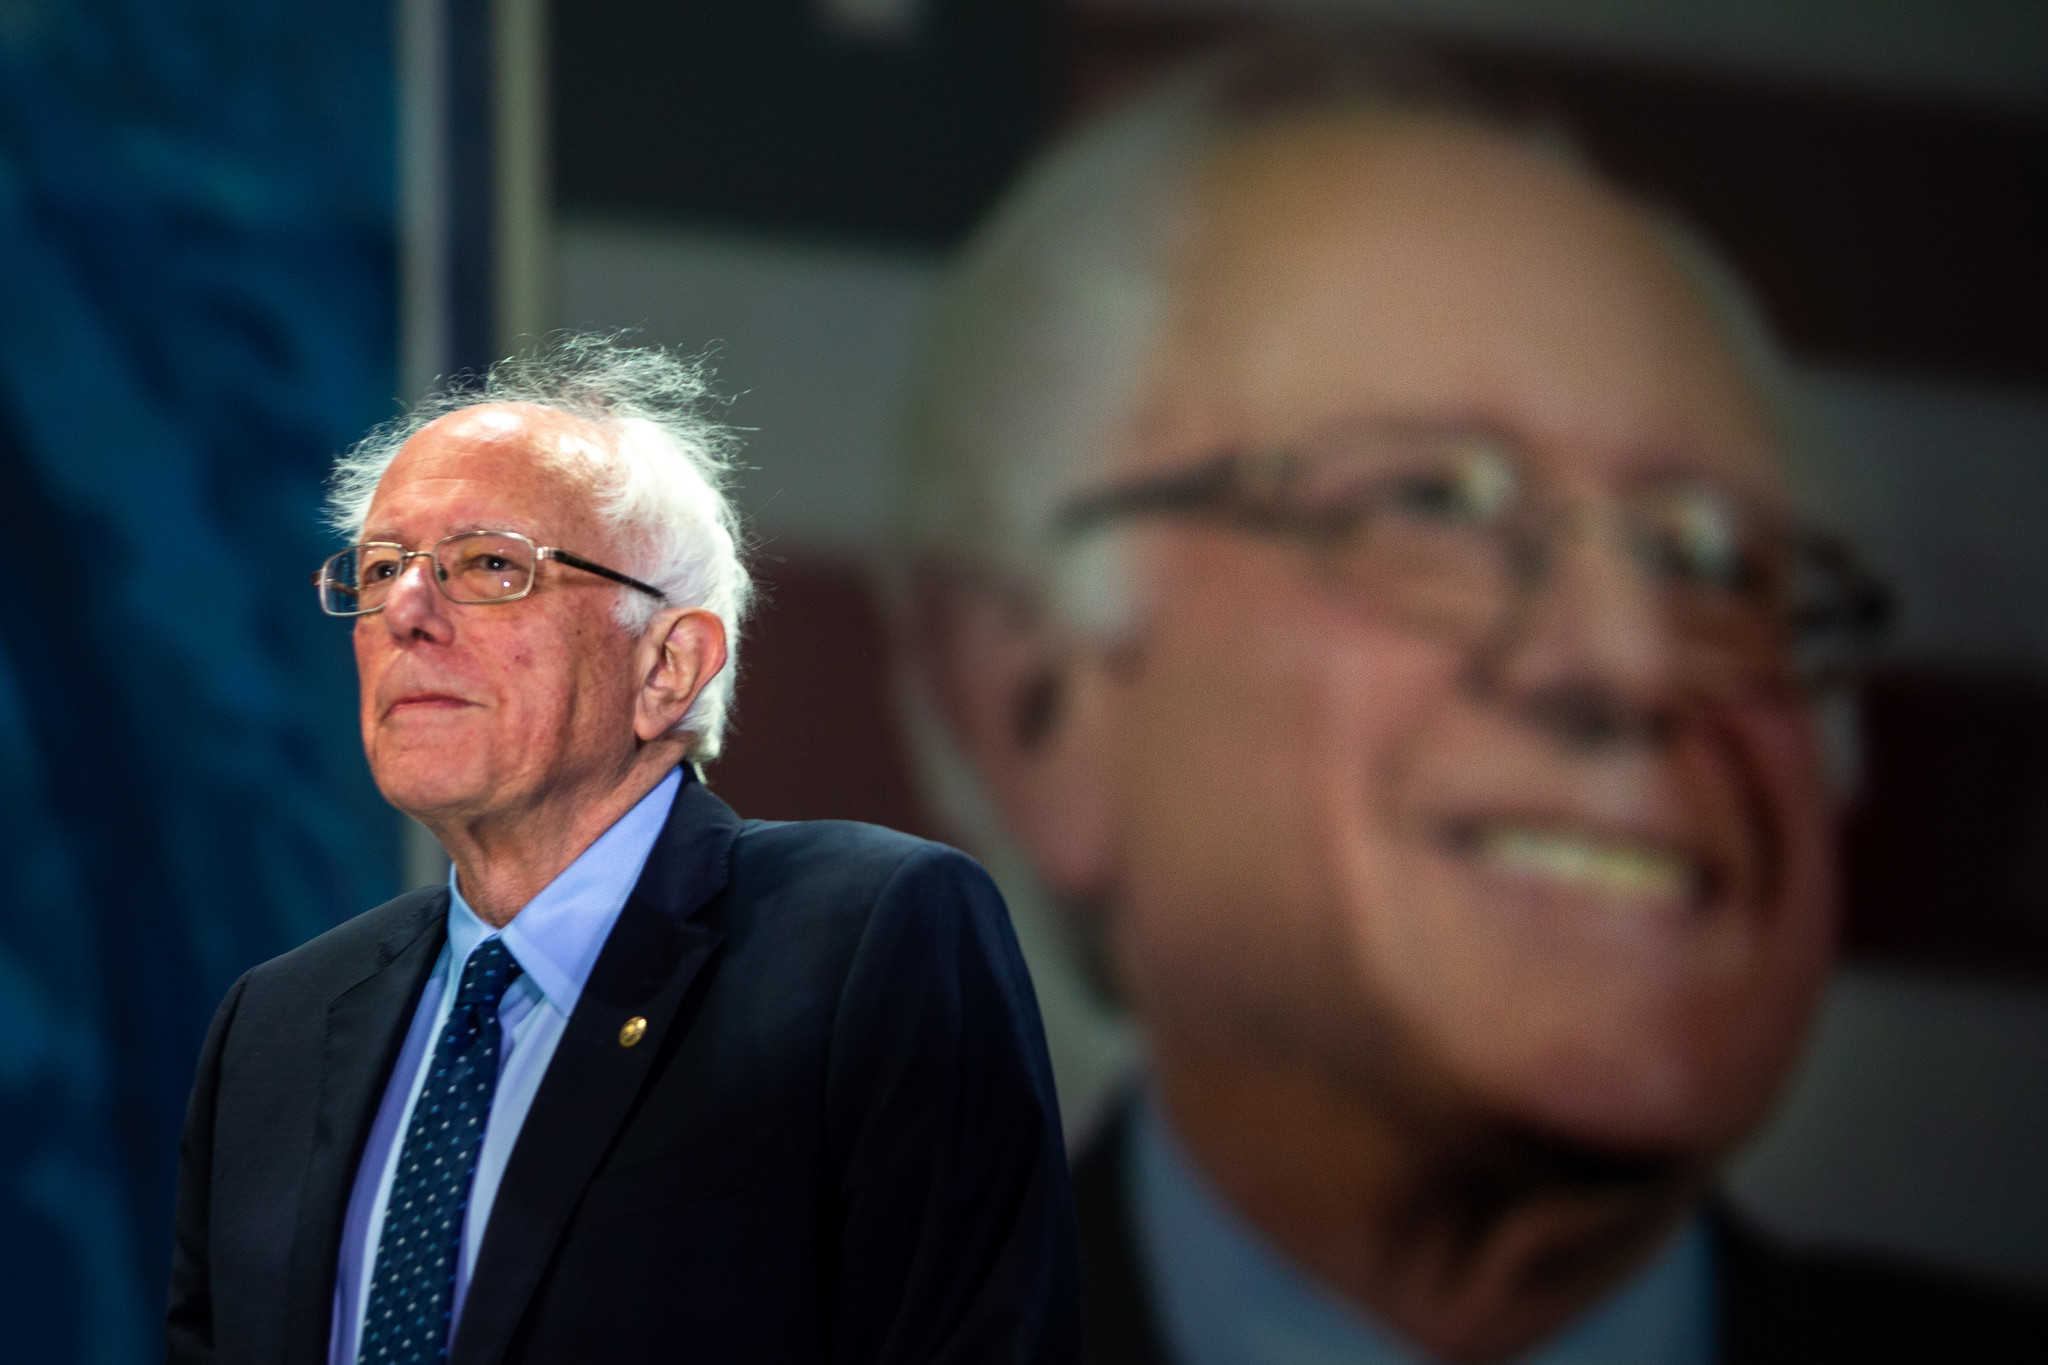 SAN FRANCISCO, CALIF. - JUNE 02: Sen. Bernie Sanders takes to the stage to address the 2019 Californ